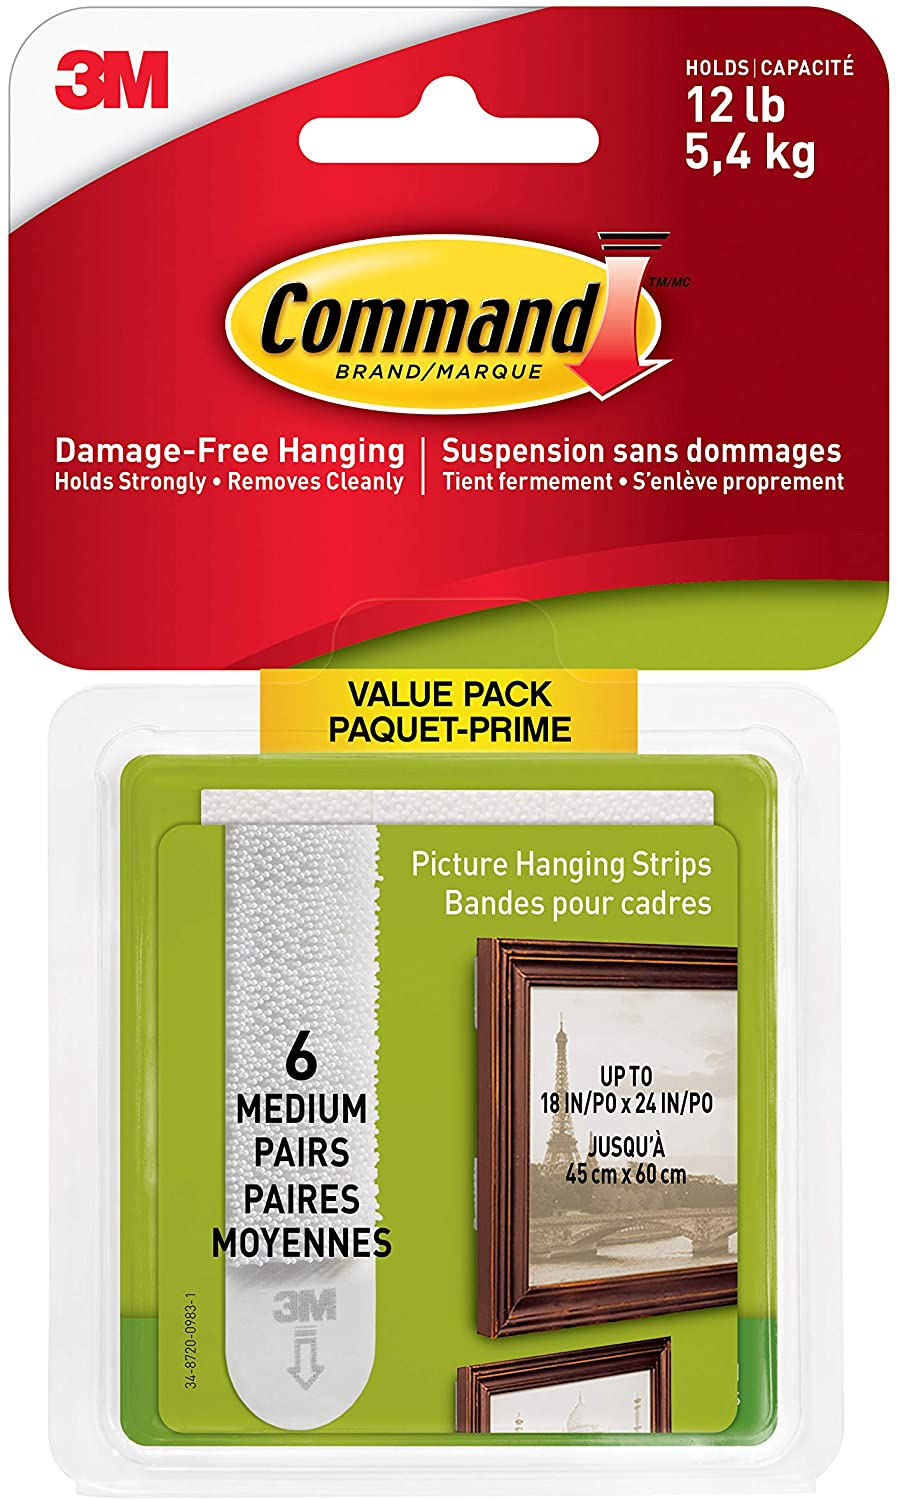 Command Medium Picture Hanging Department store Strips 12 Sets of Outlet SALE Capacity 6 lb